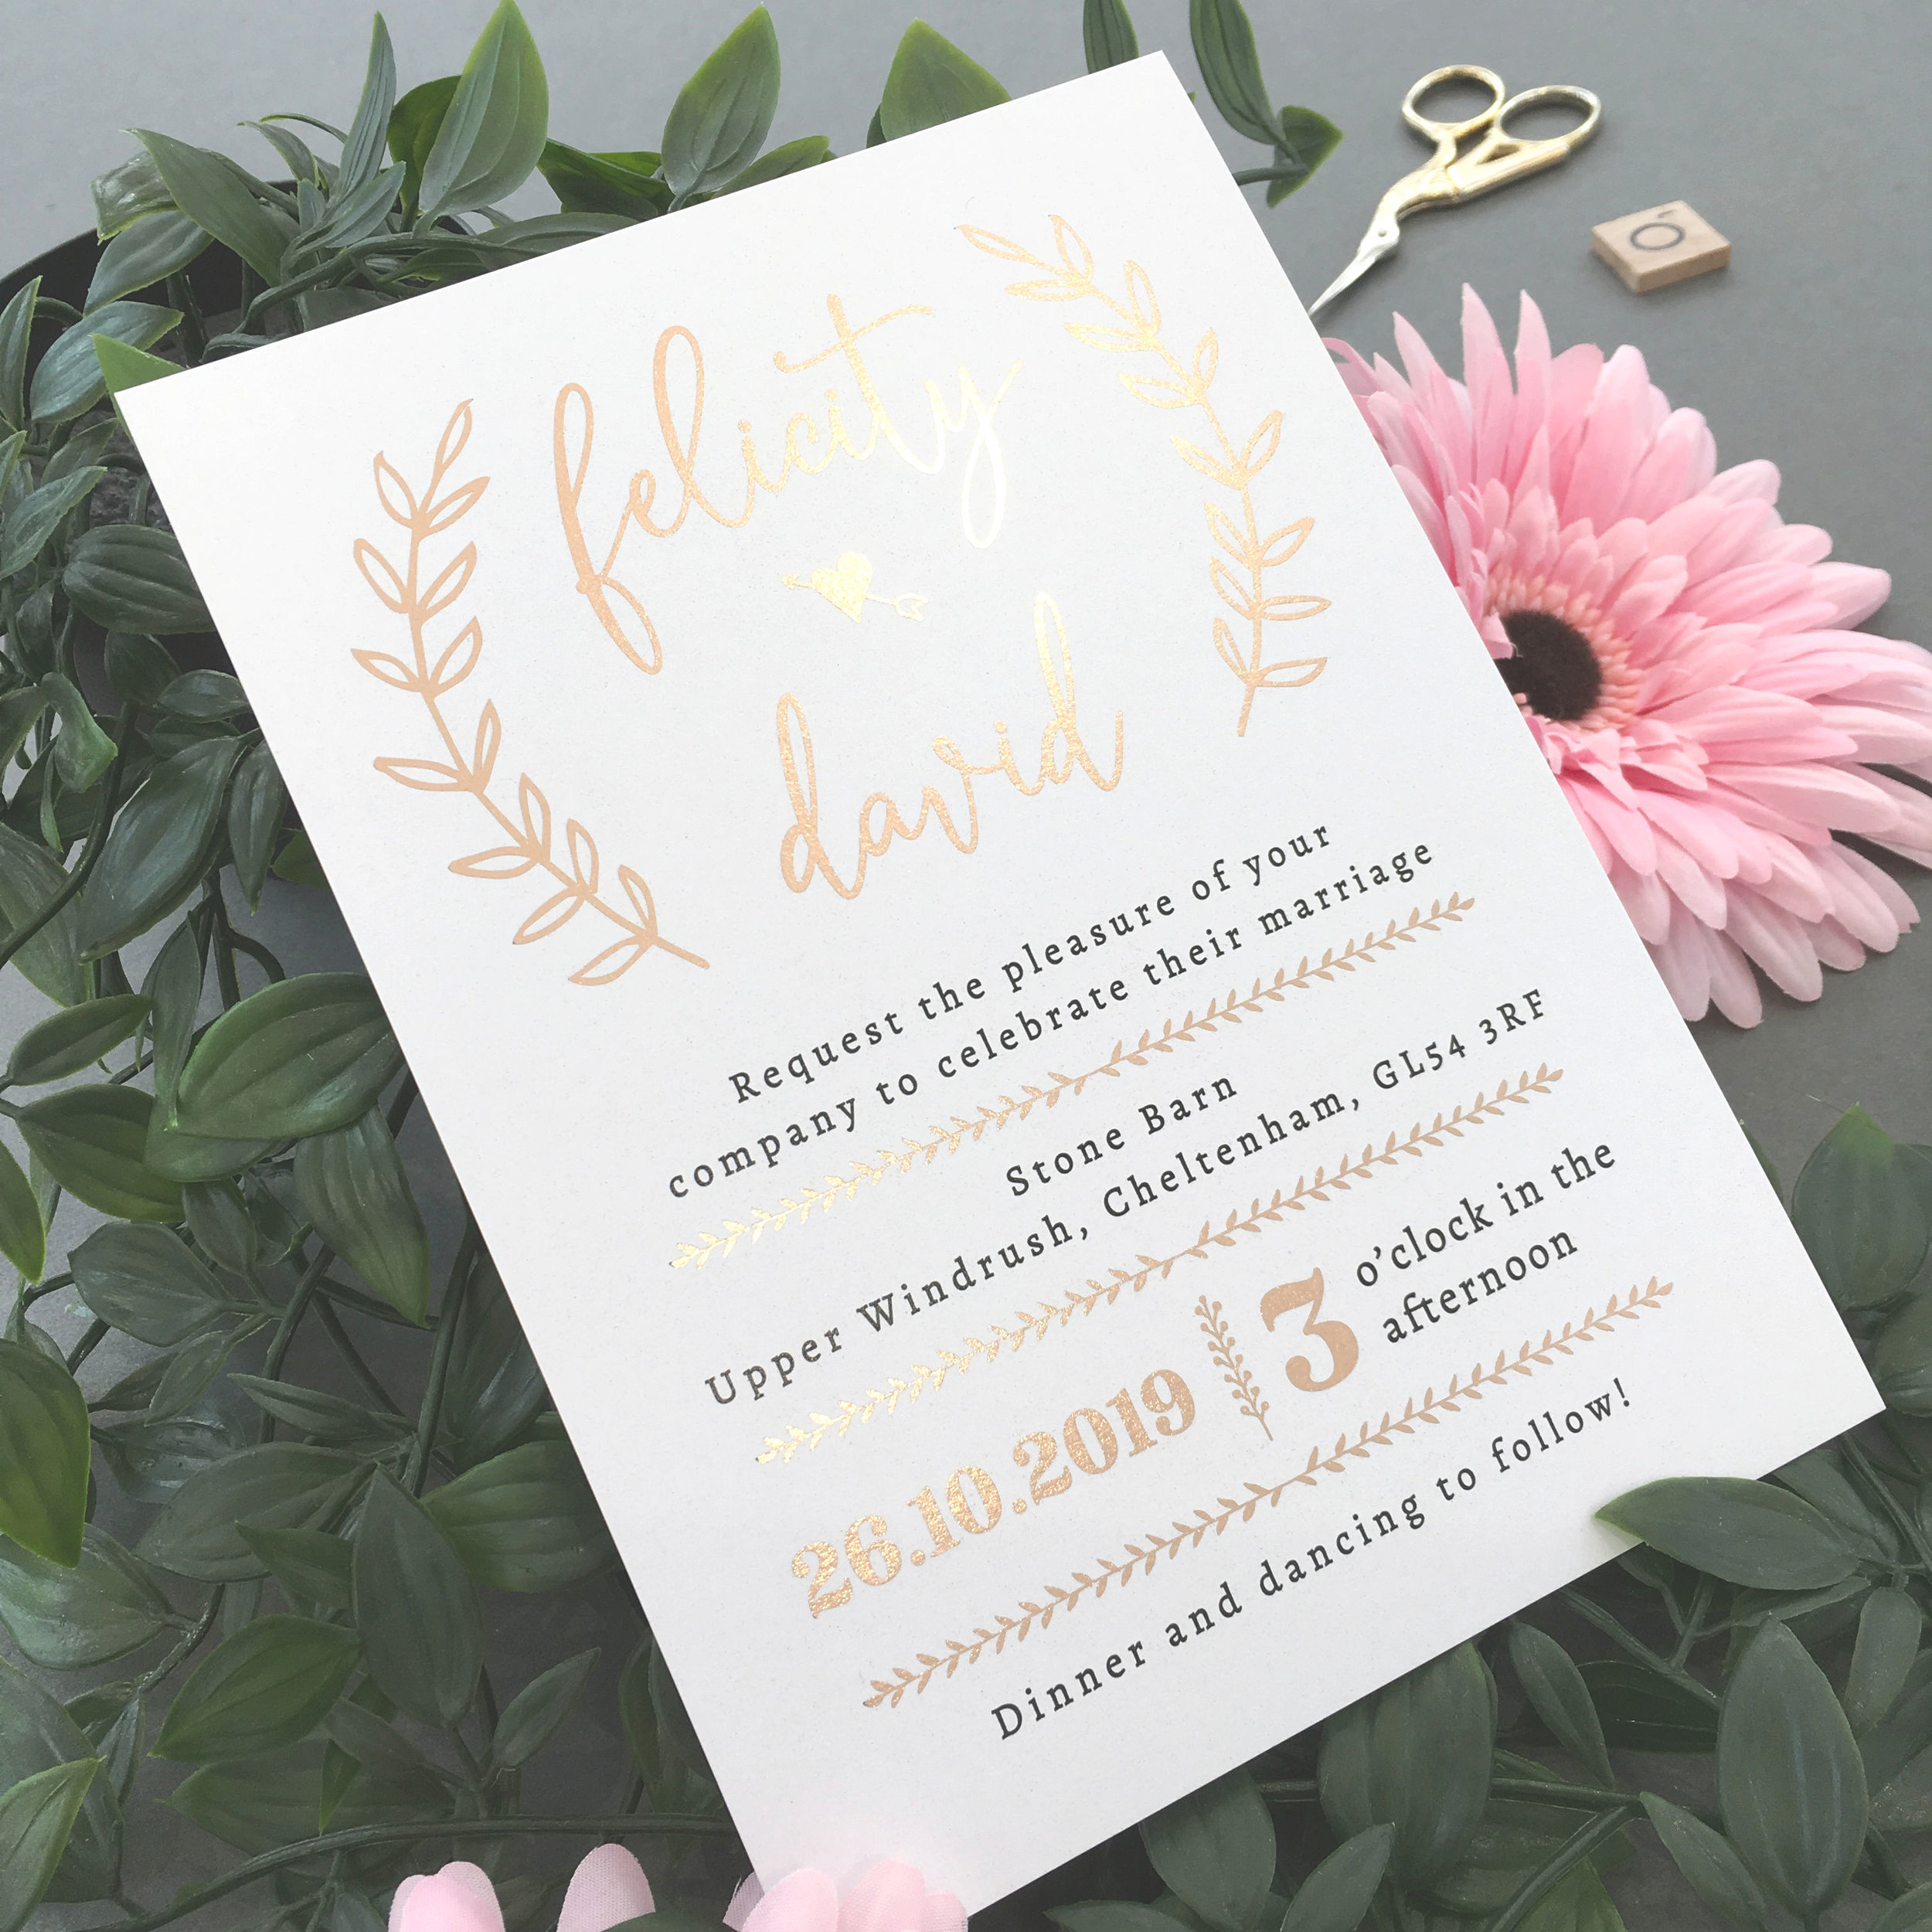 Poplar - Rose Gold Foiled Invite.jpg